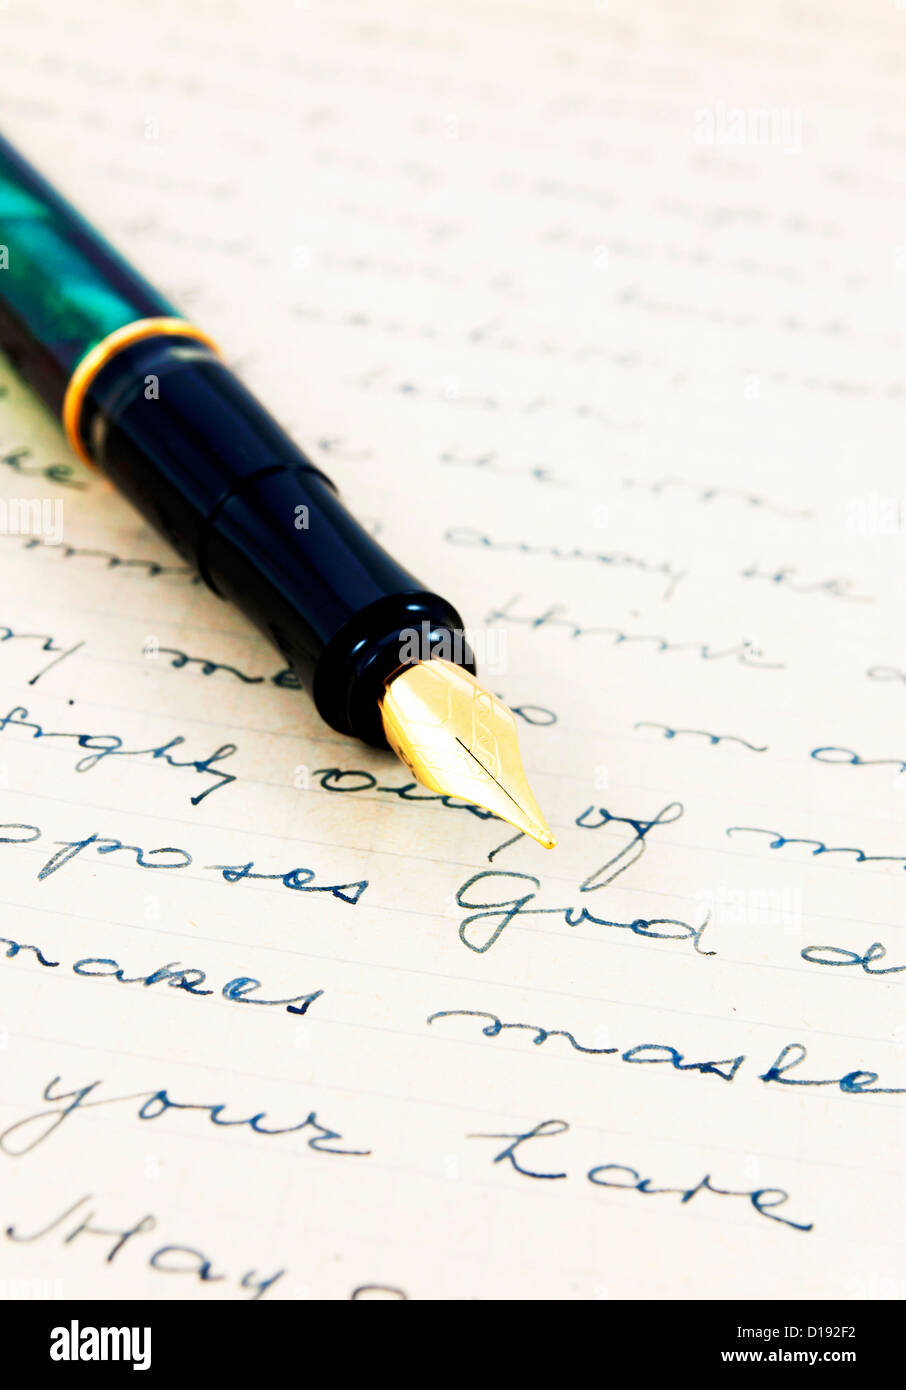 Old letter with fountain pen - Stock Image